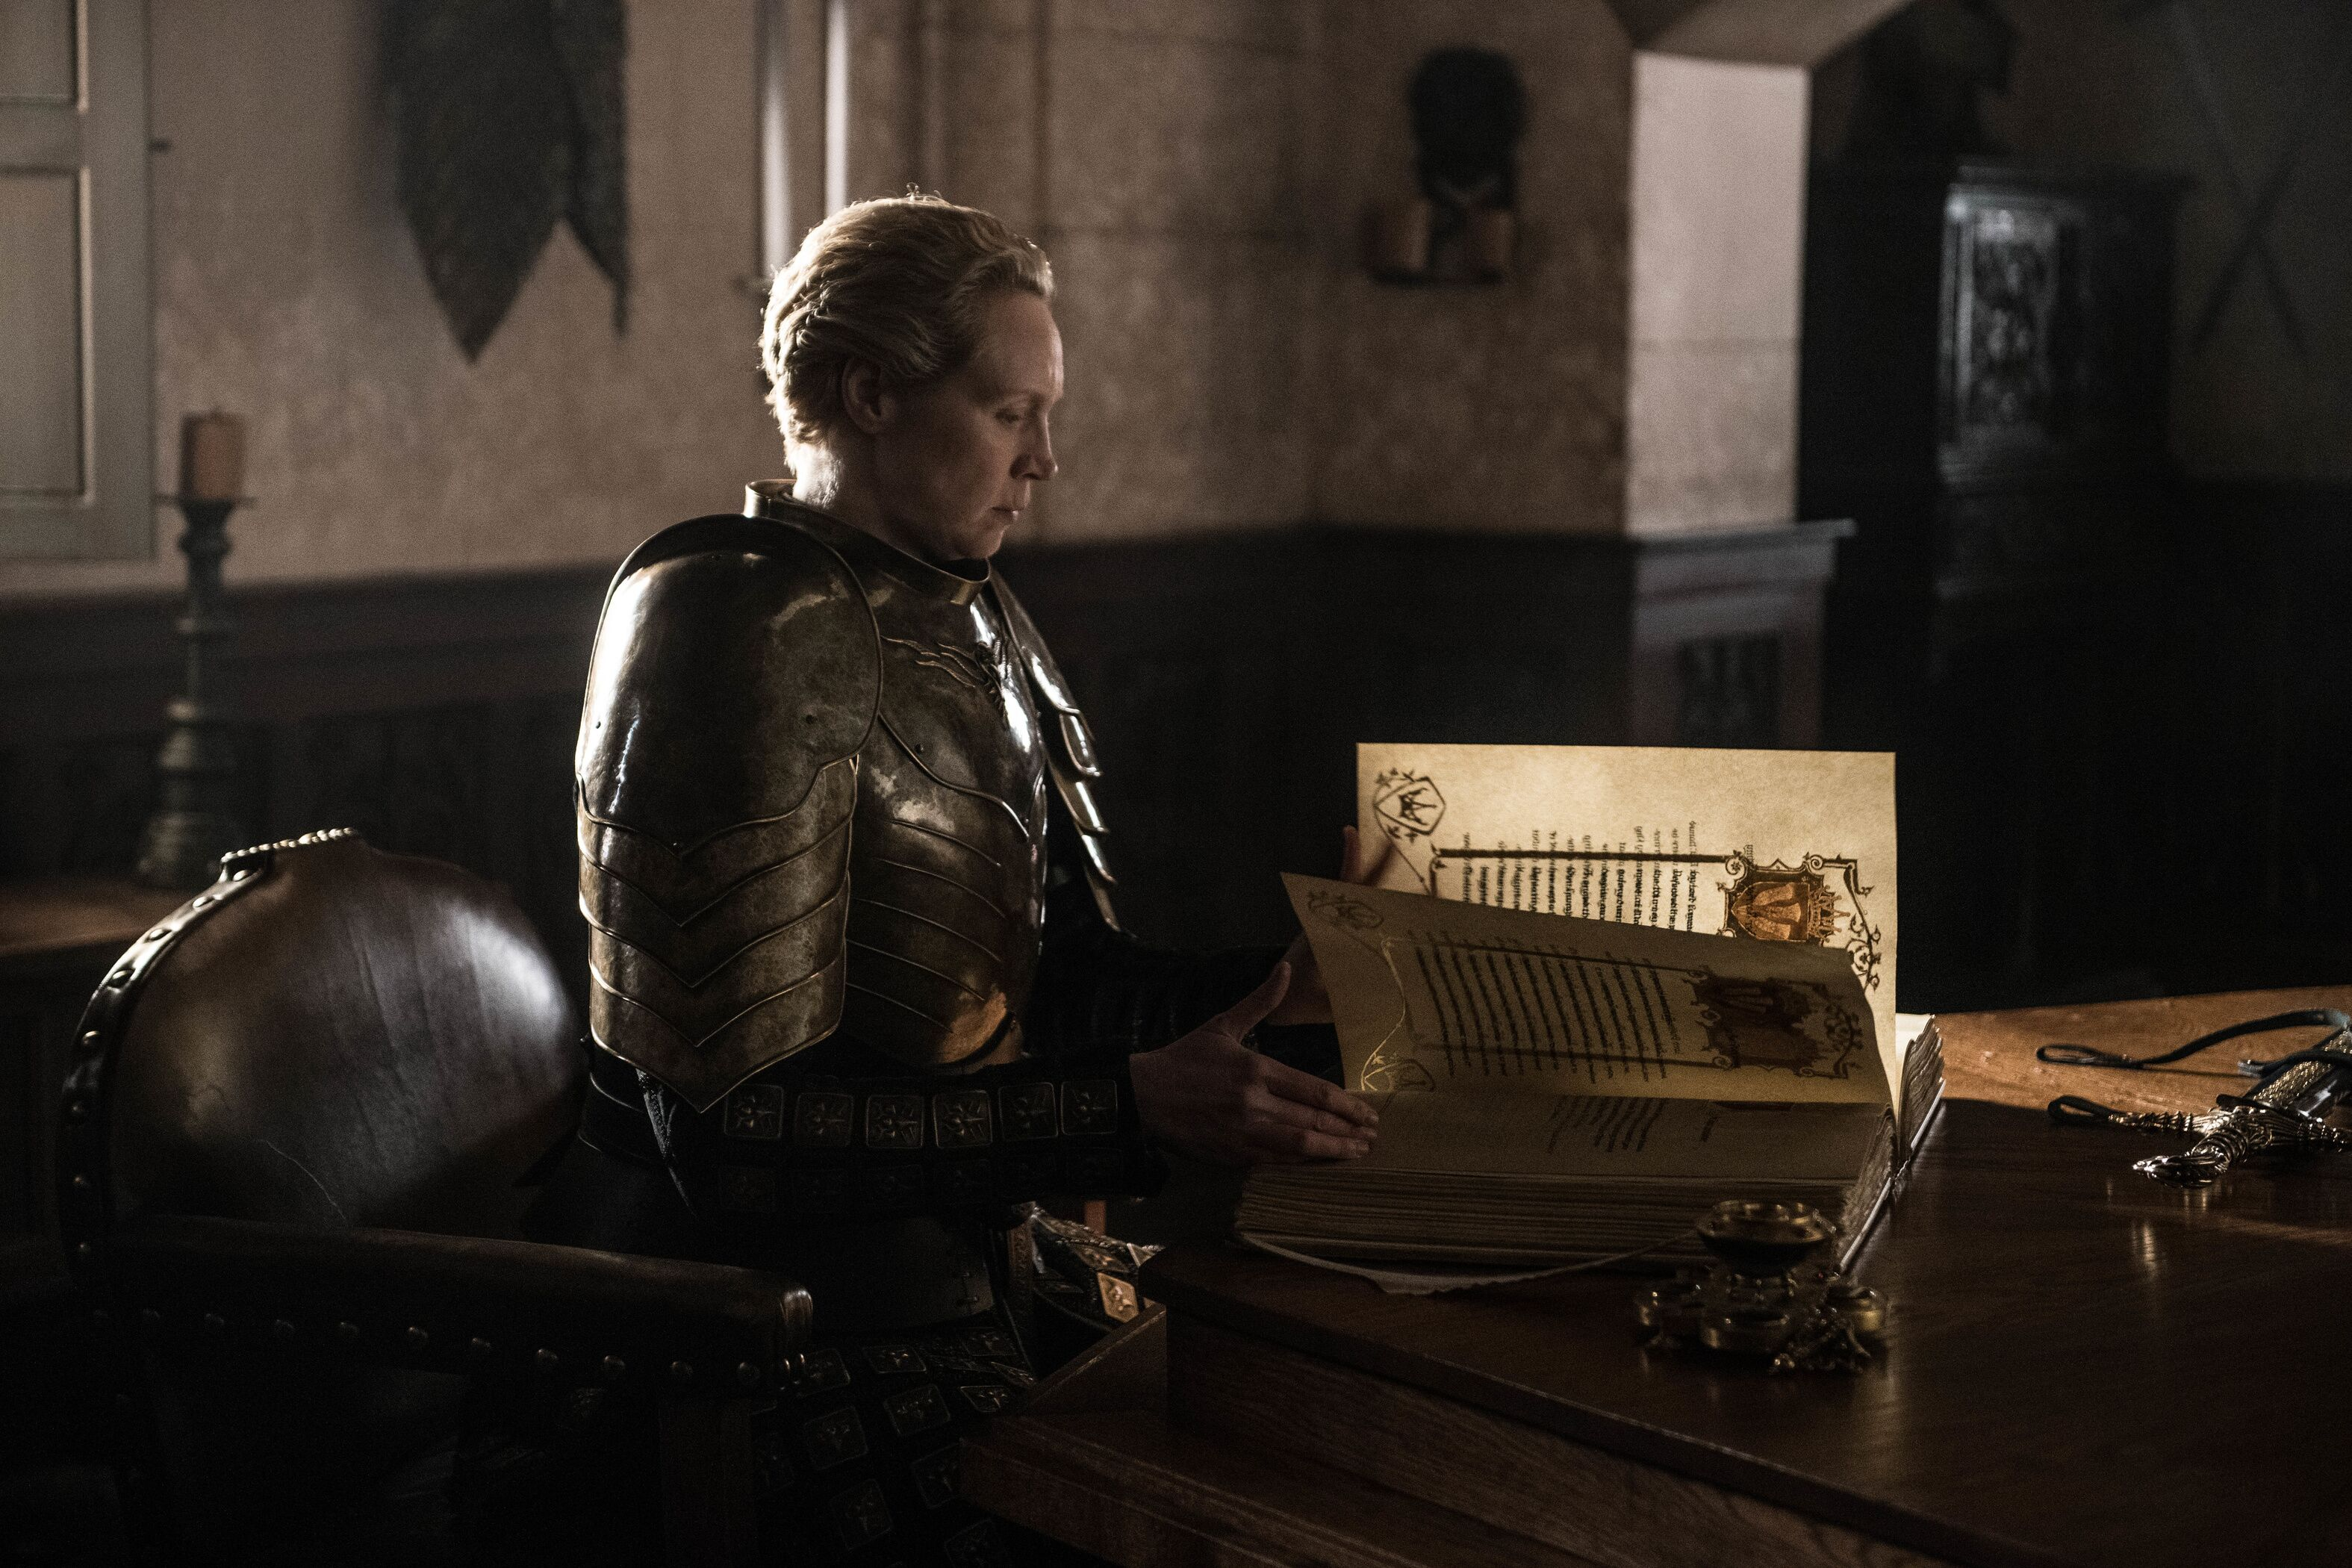 Game of Thrones: 6 spin-offs we need right after season 8